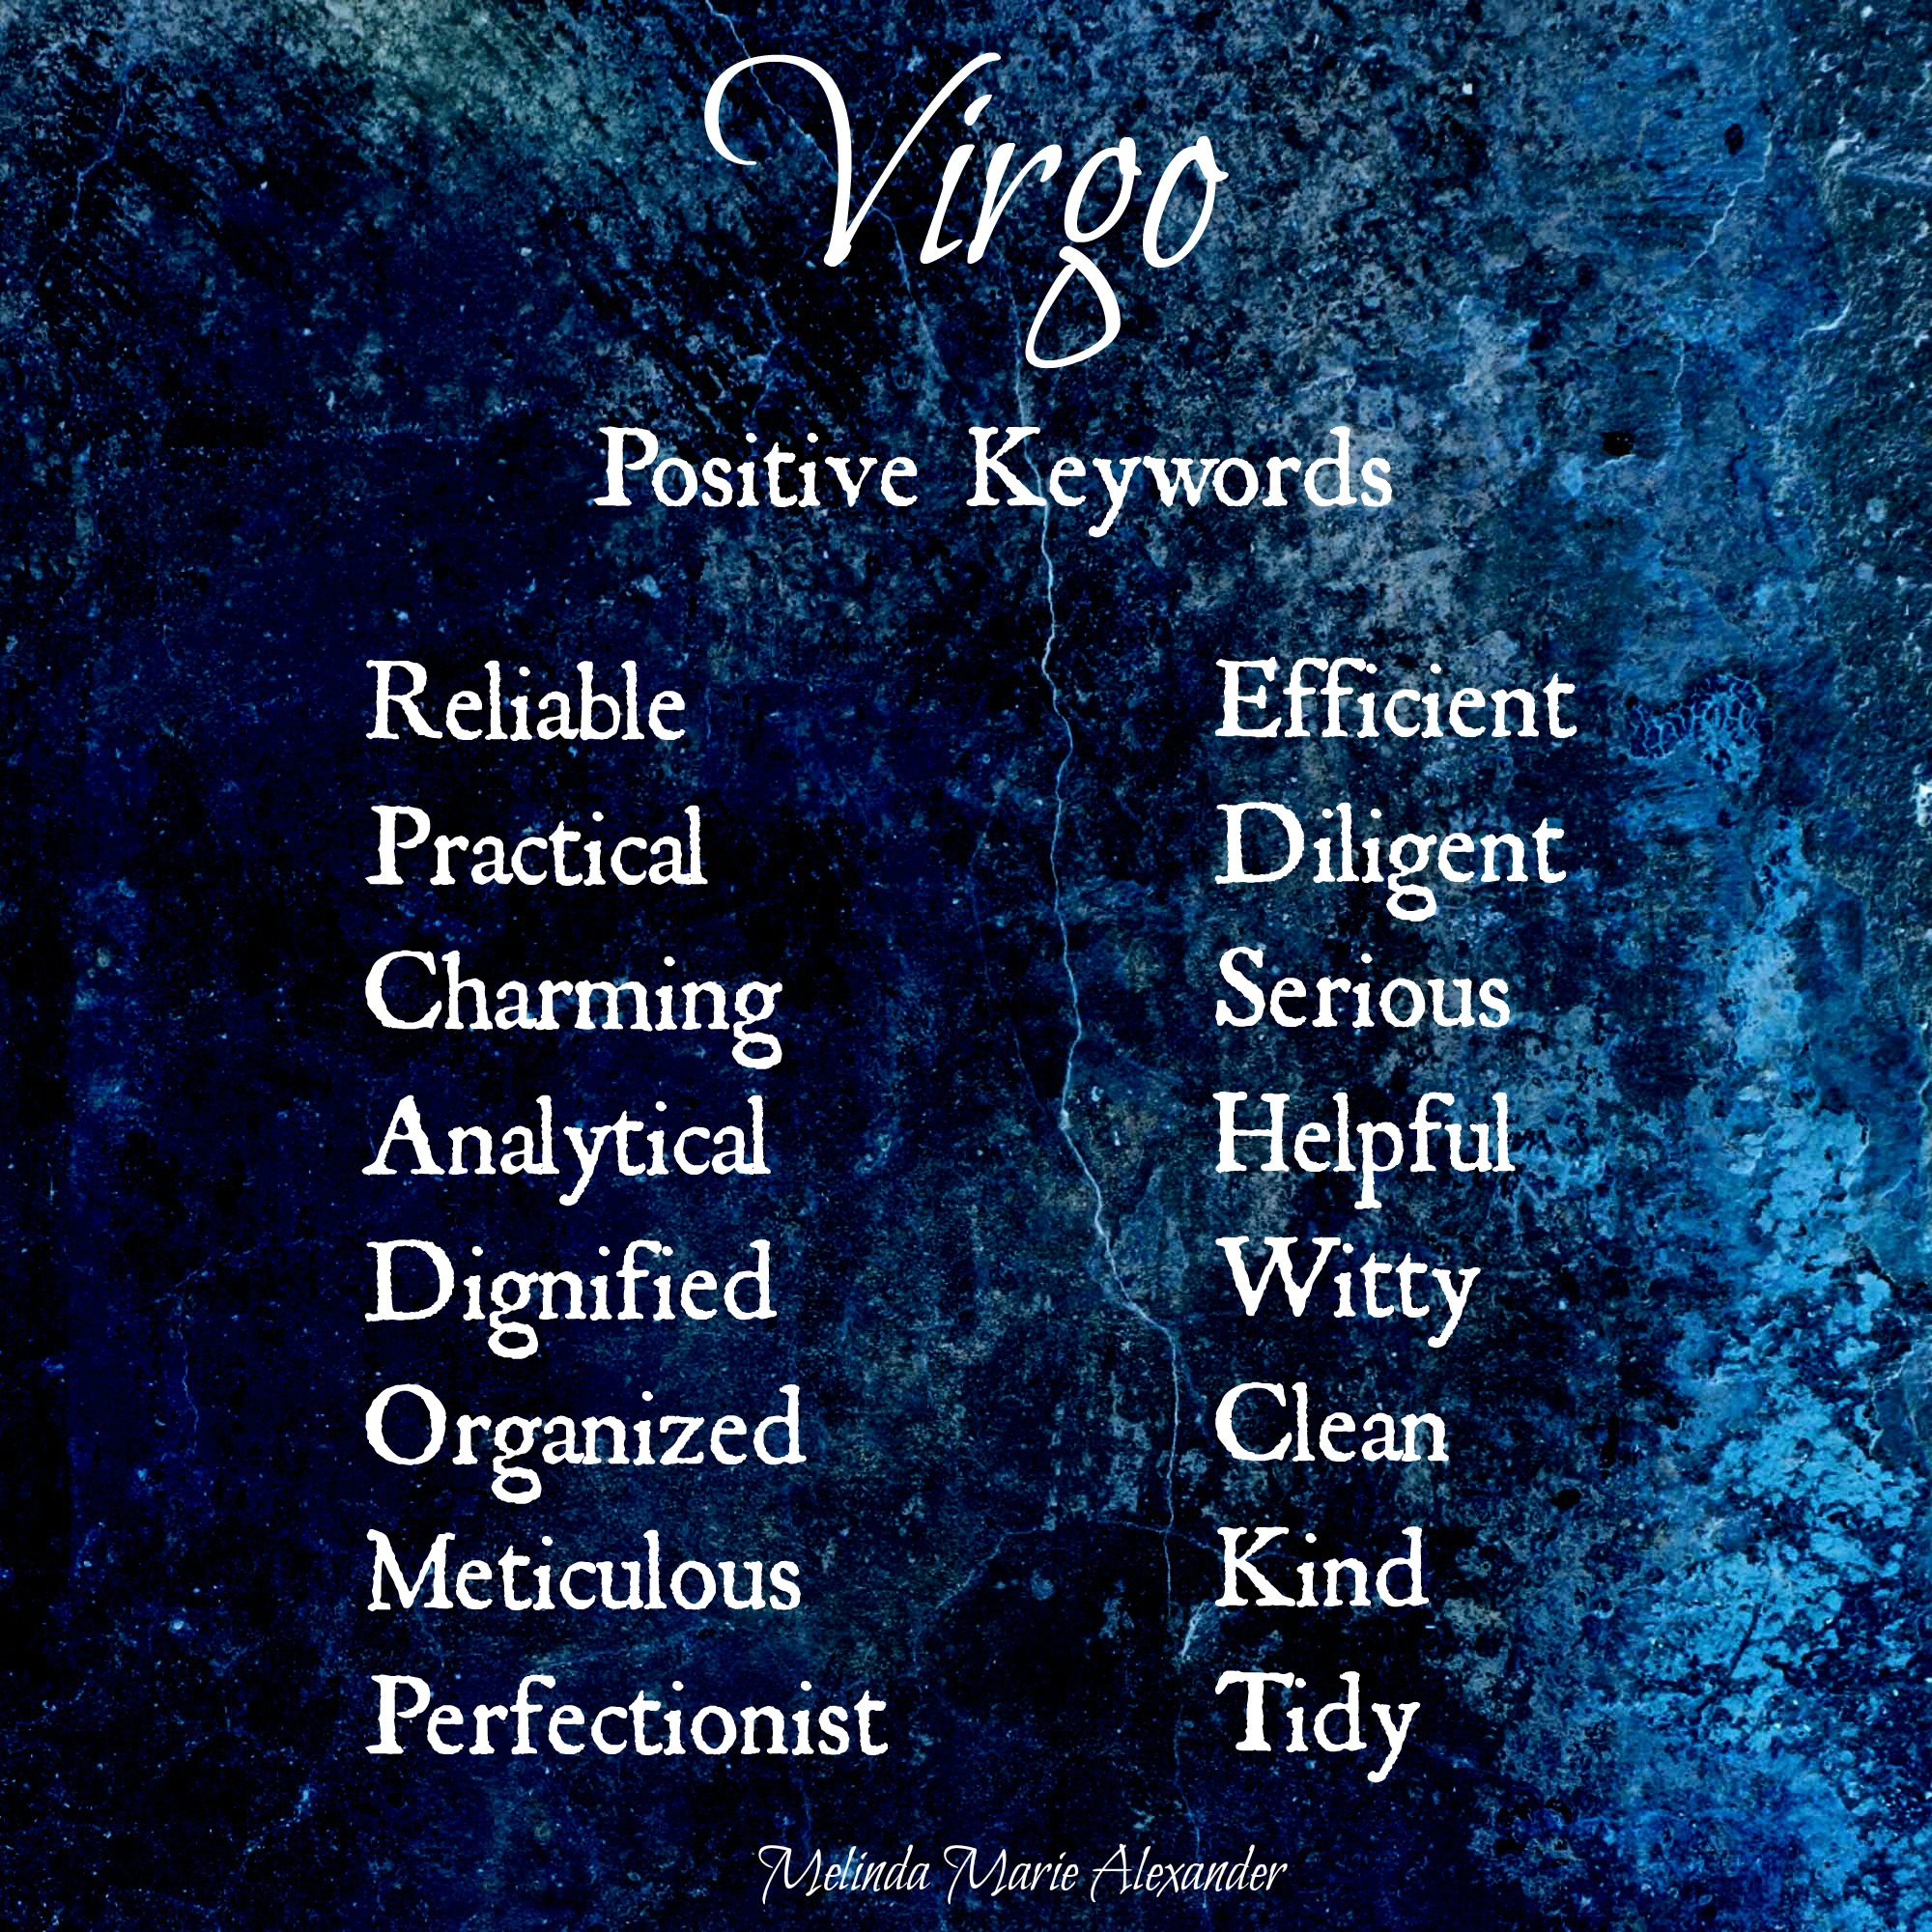 virgo positive keywords withtext